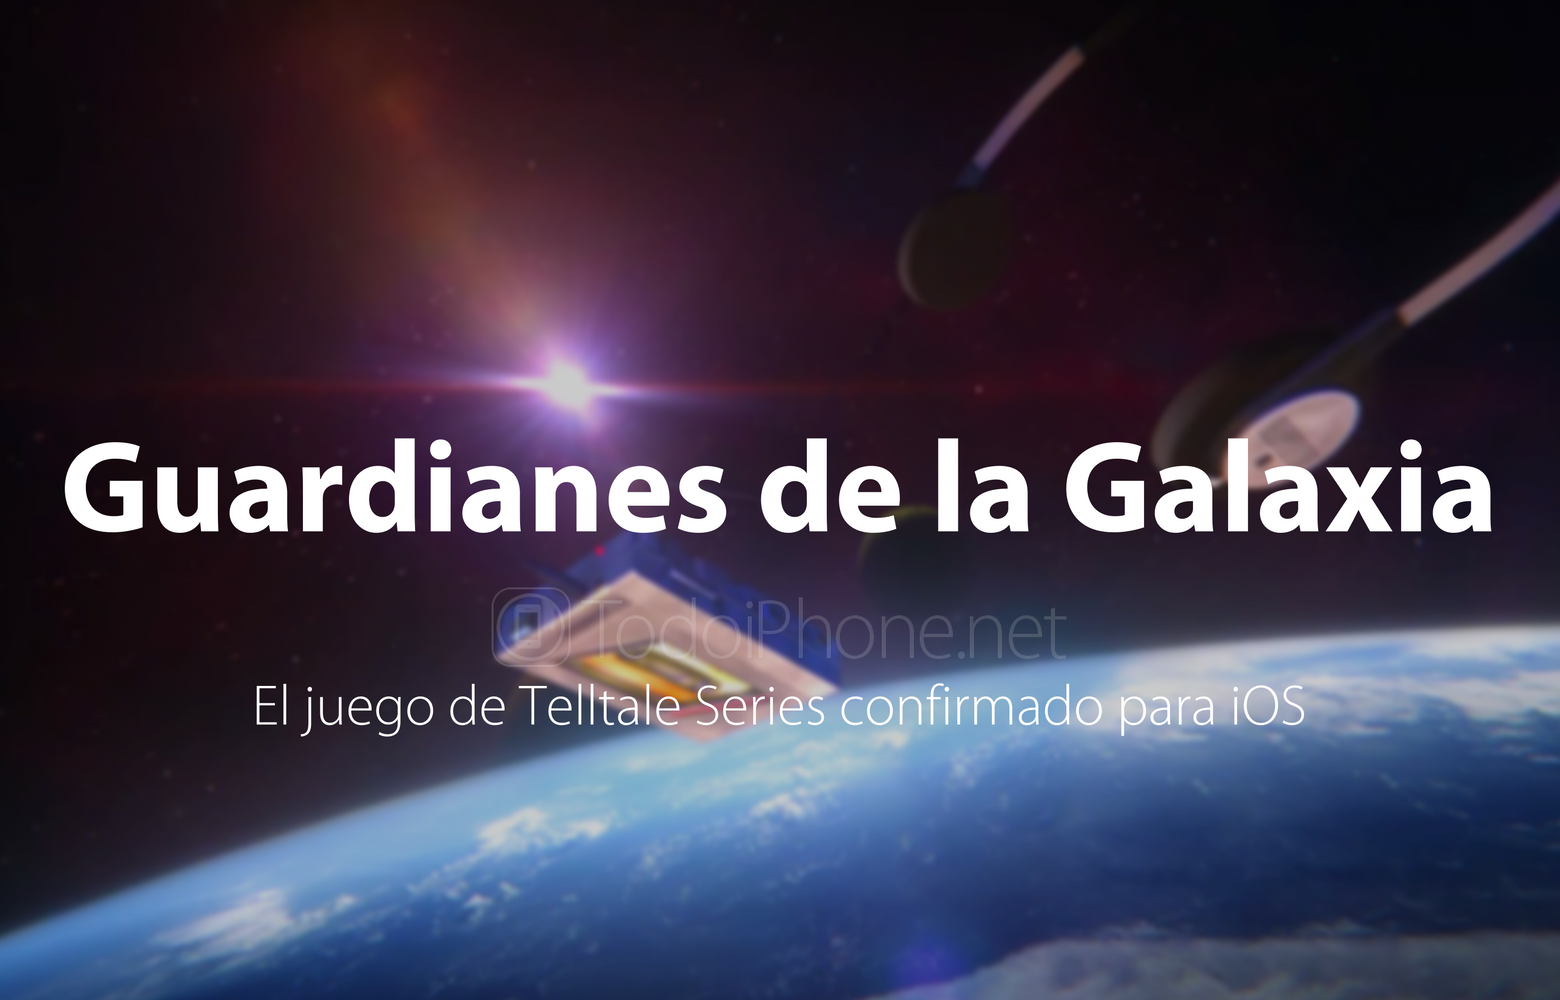 guardianes-galaxia-telltale-series-ios-iphone-ipadpng